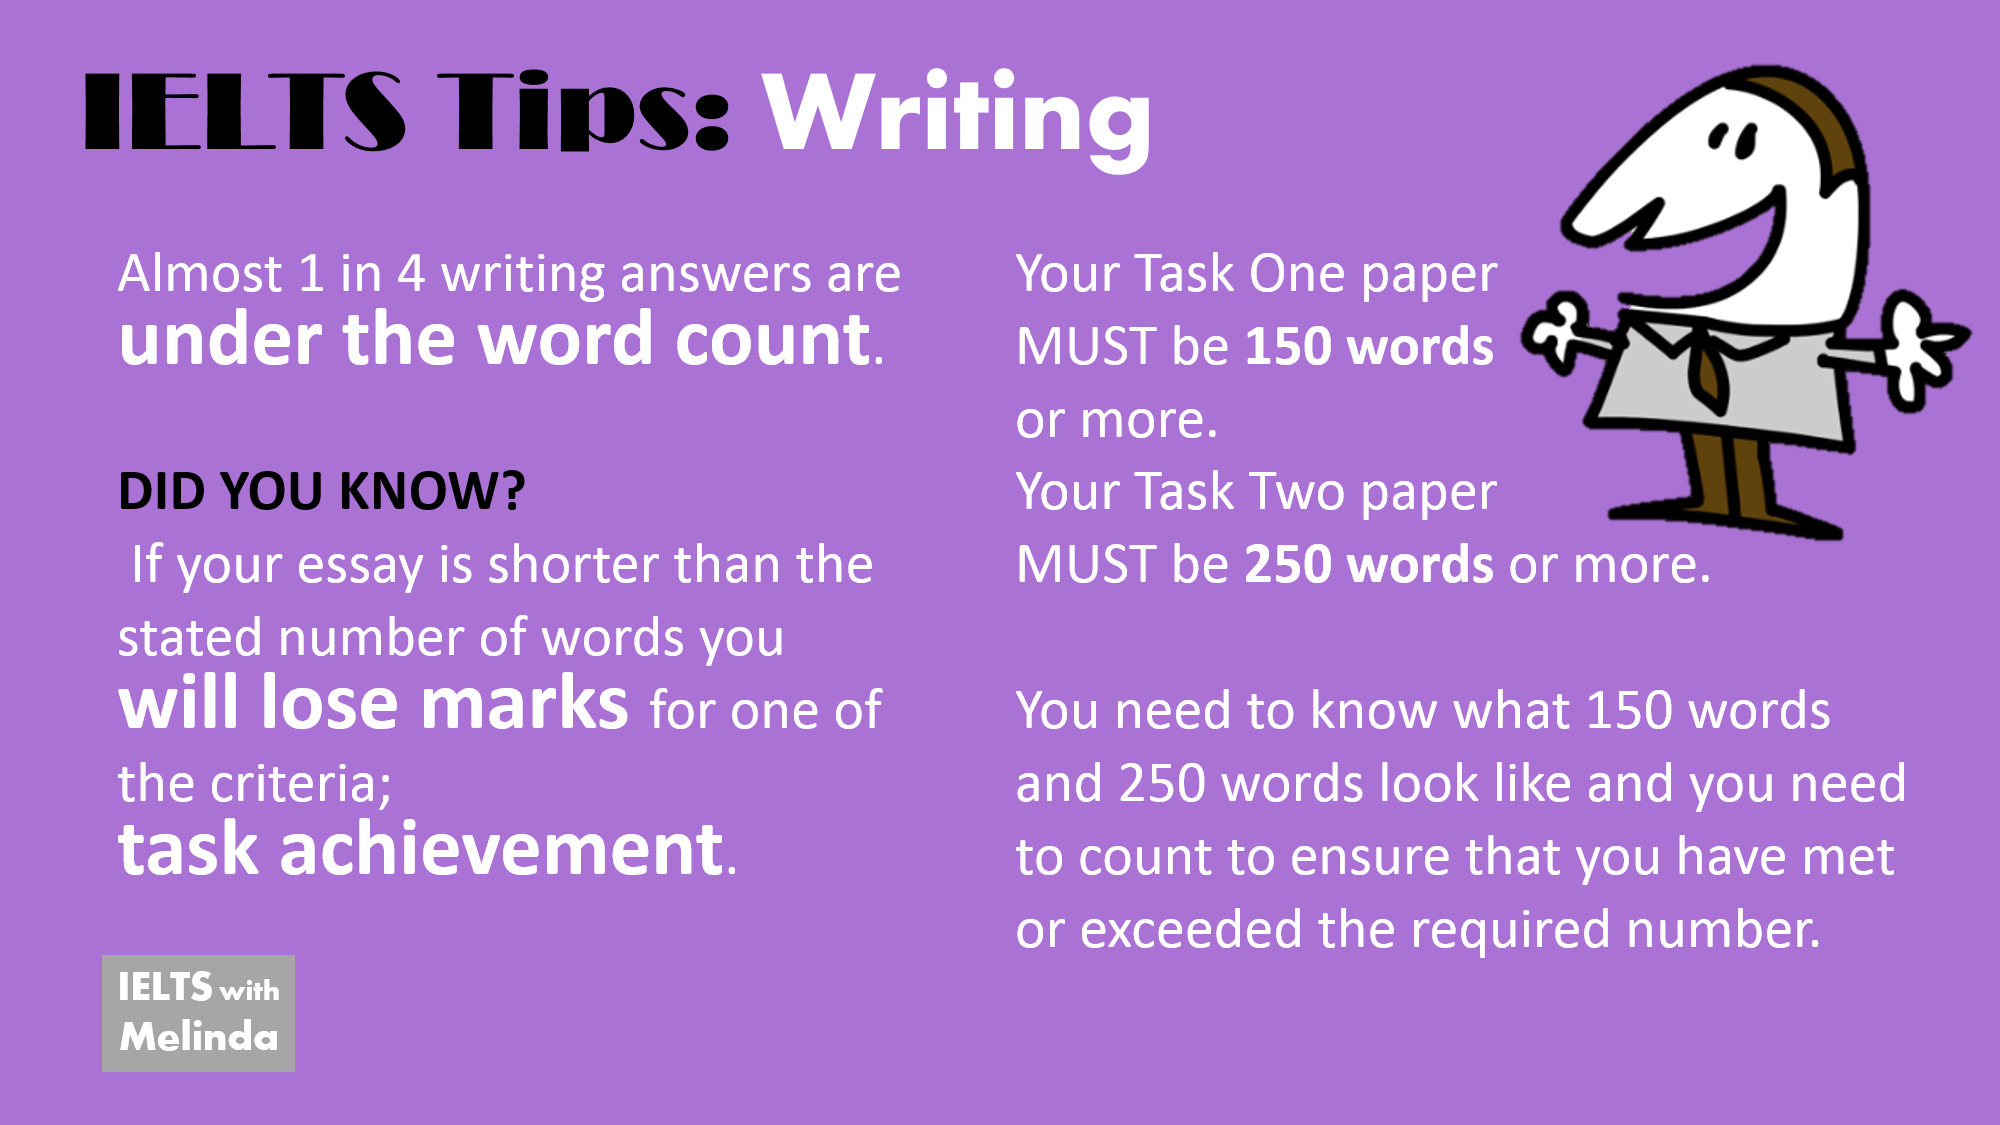 Academic writing help of ielts tips